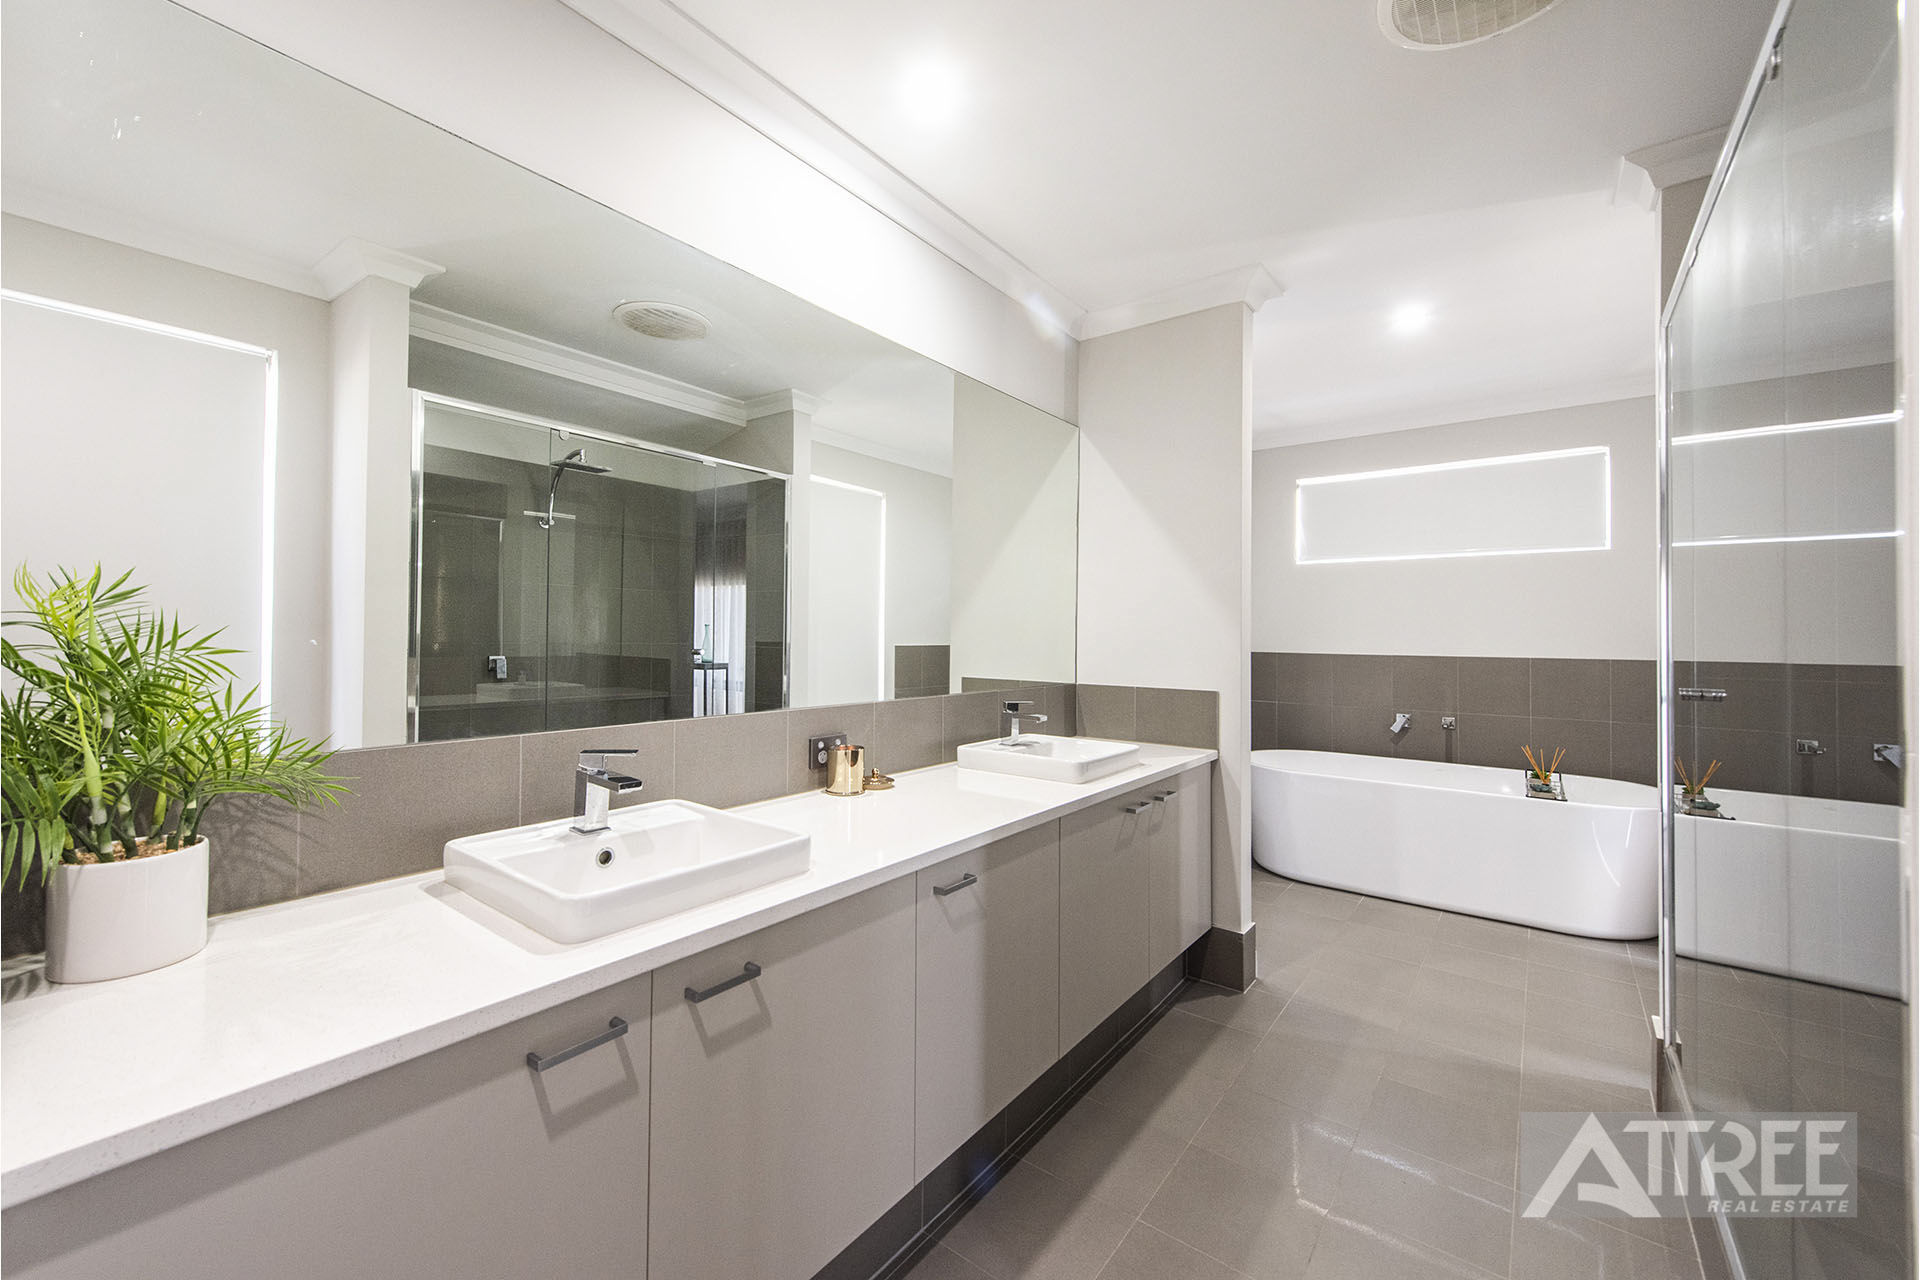 Property for sale in SOUTHERN RIVER, 8 Kempster Way : Attree Real Estate